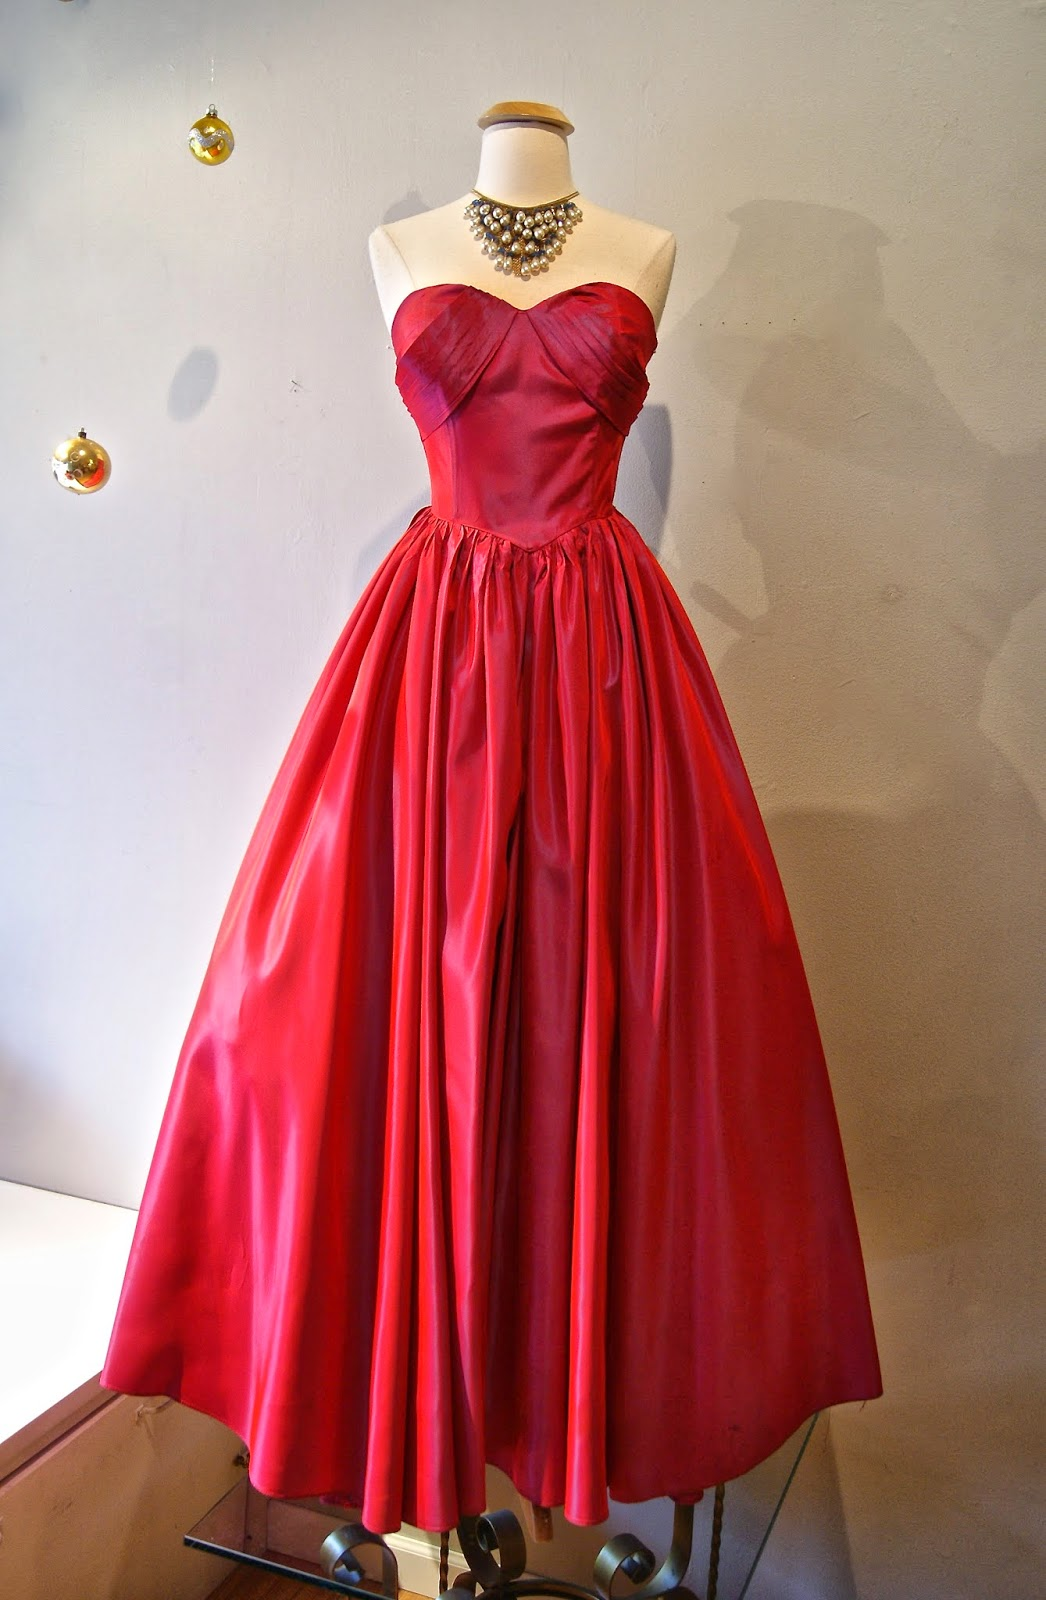 1950s Ballgown Dresses Fashion Dresses